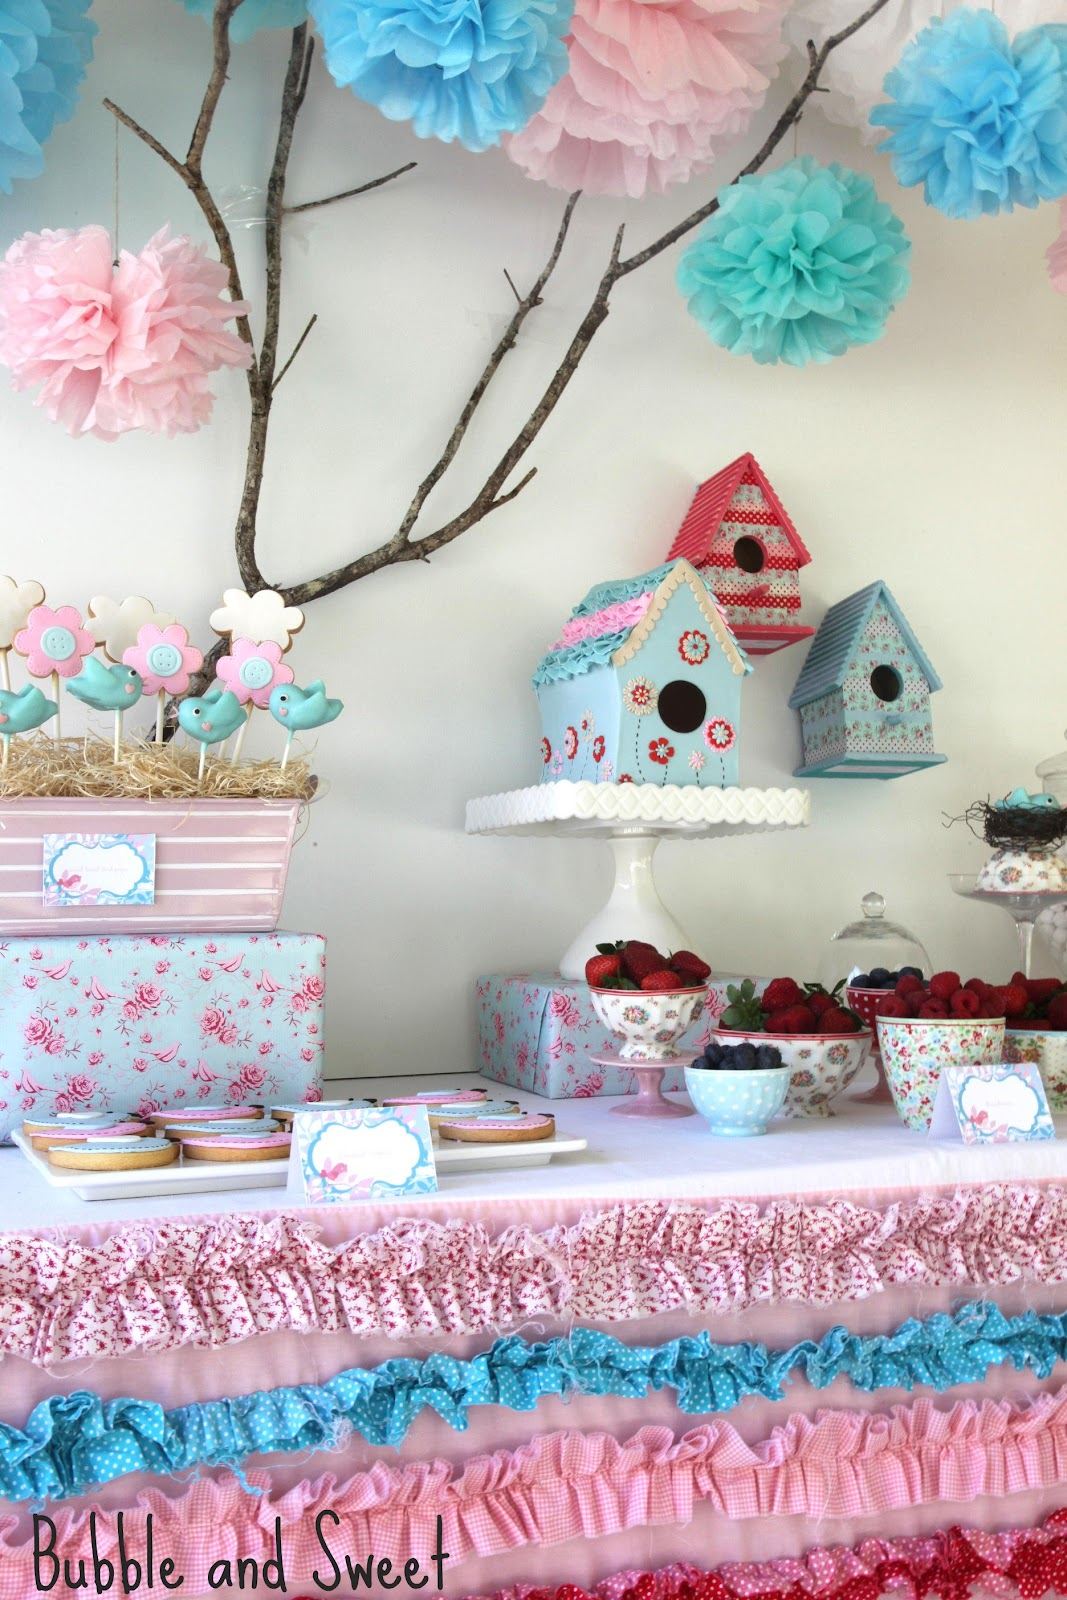 http://3.bp.blogspot.com/-fCUxbBjJQxw/UEu0wPunr3I/AAAAAAAAGlA/yI6z0tlIHCU/s1600/beautiful+prettiest+bird+party+blue+pink+red+ruffles+sweet.jpg